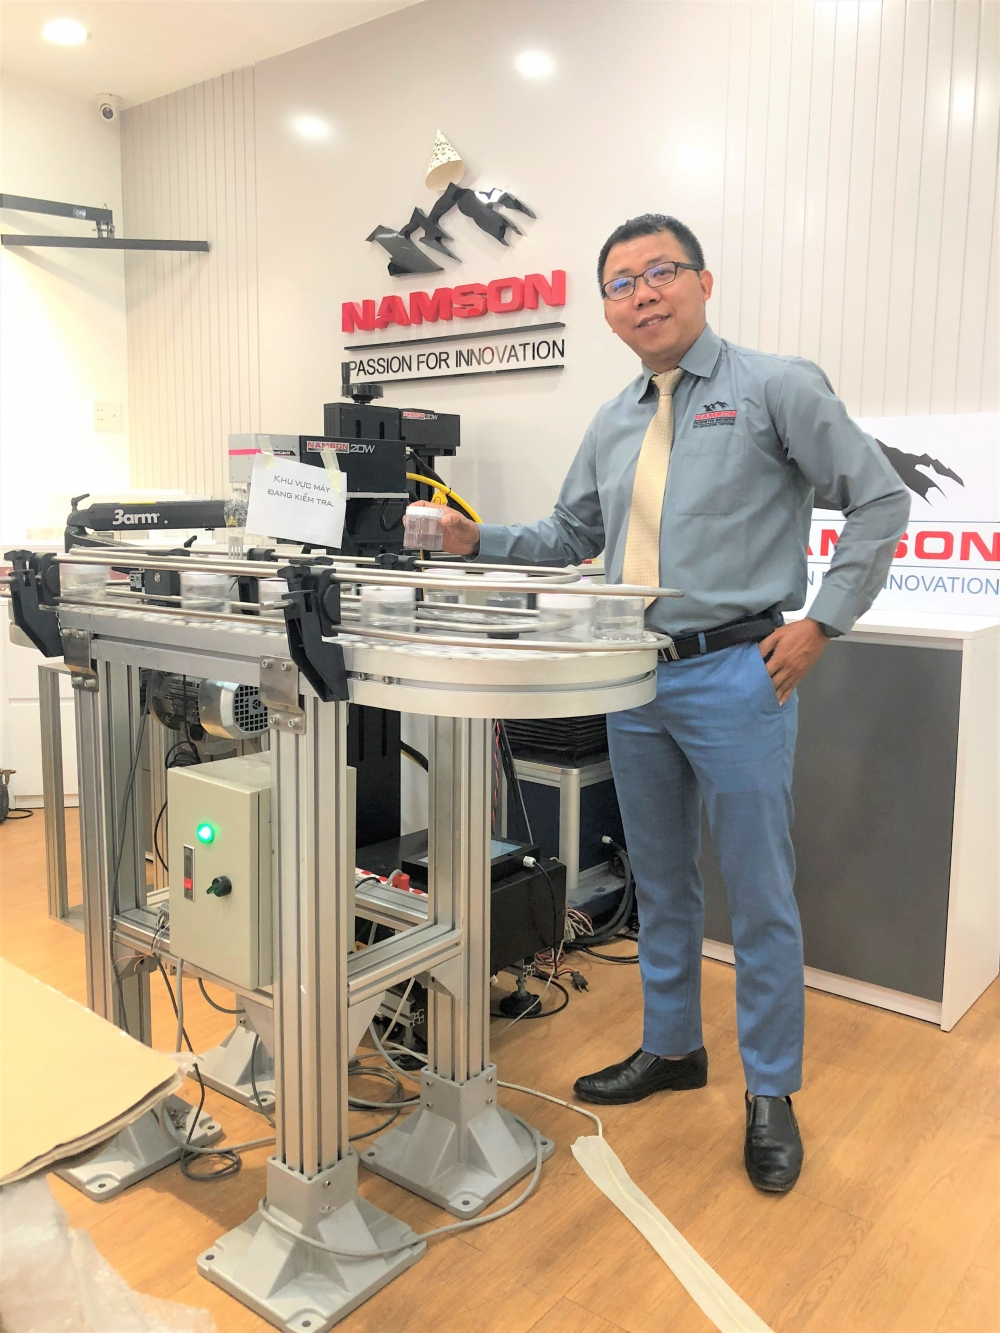 namson laser delivers cutting edge technology to vietnam